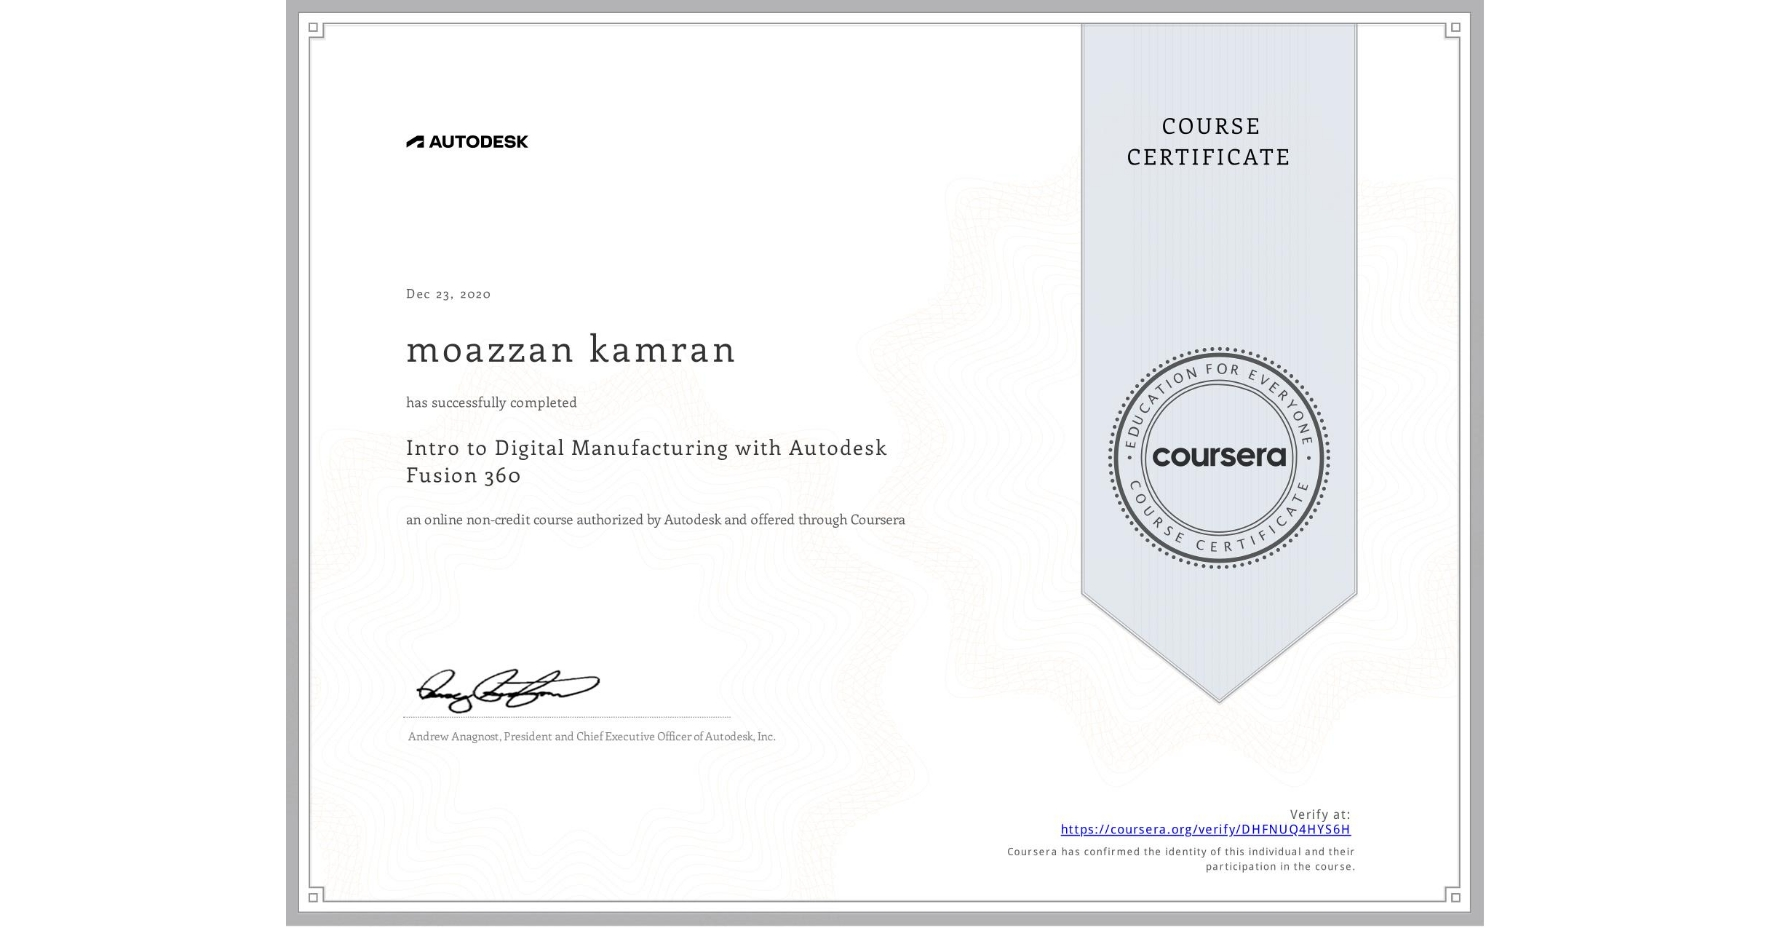 View certificate for moazzan kamran, Intro to Digital Manufacturing with Autodesk Fusion 360, an online non-credit course authorized by Autodesk and offered through Coursera